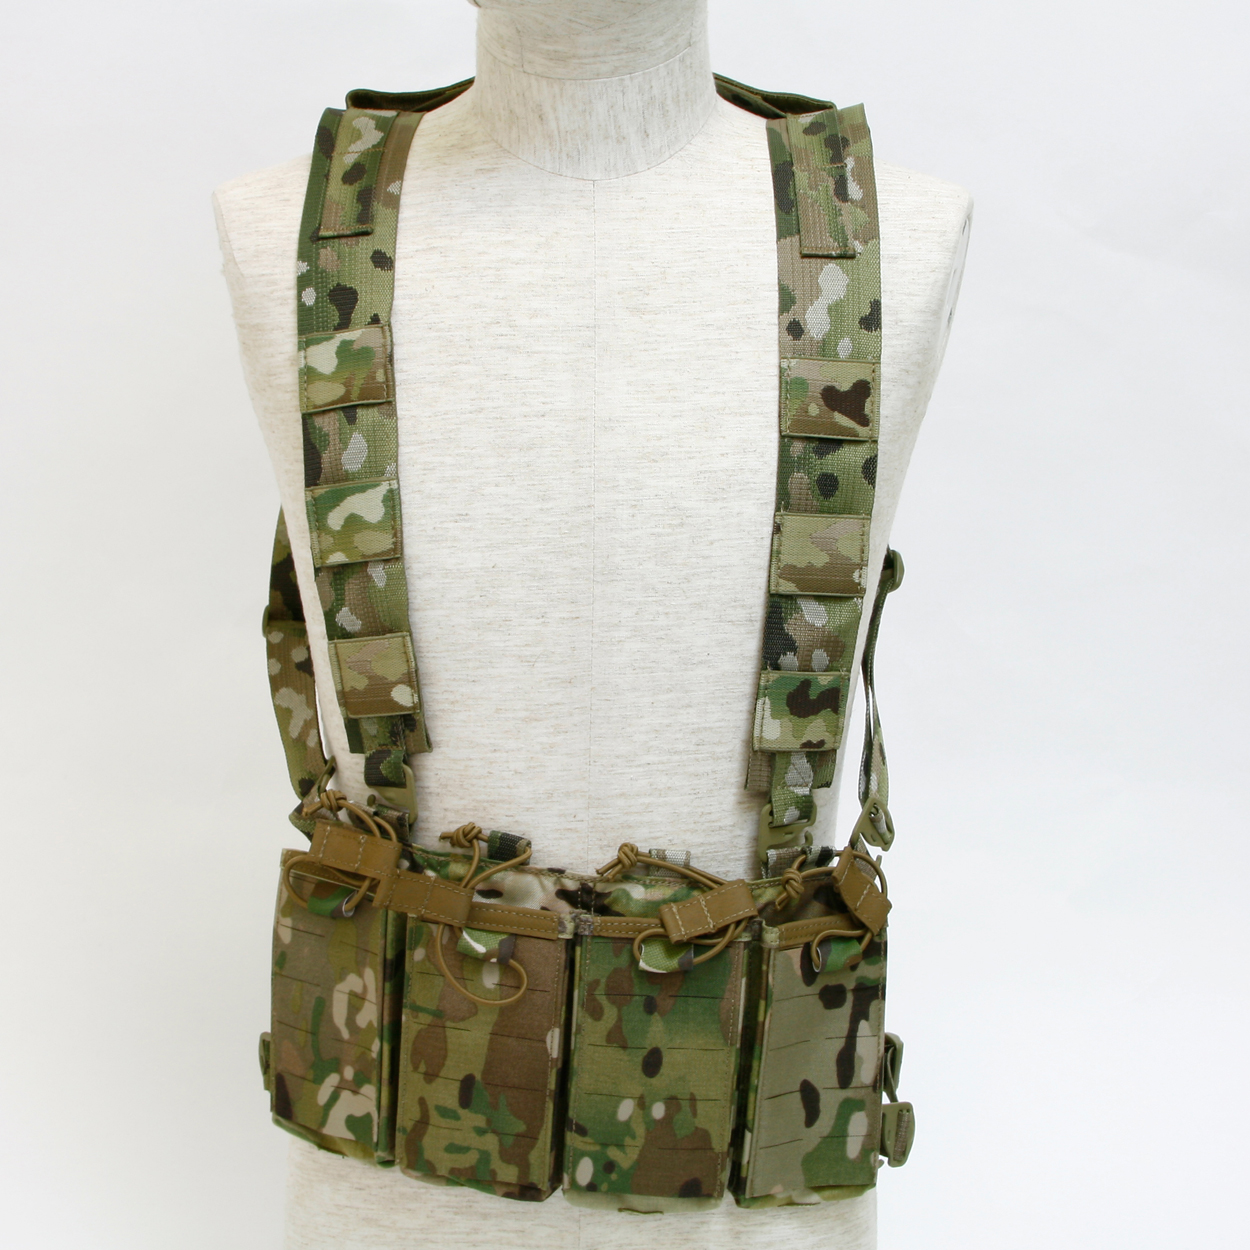 M4/AK Chest Rig 6/12 MC